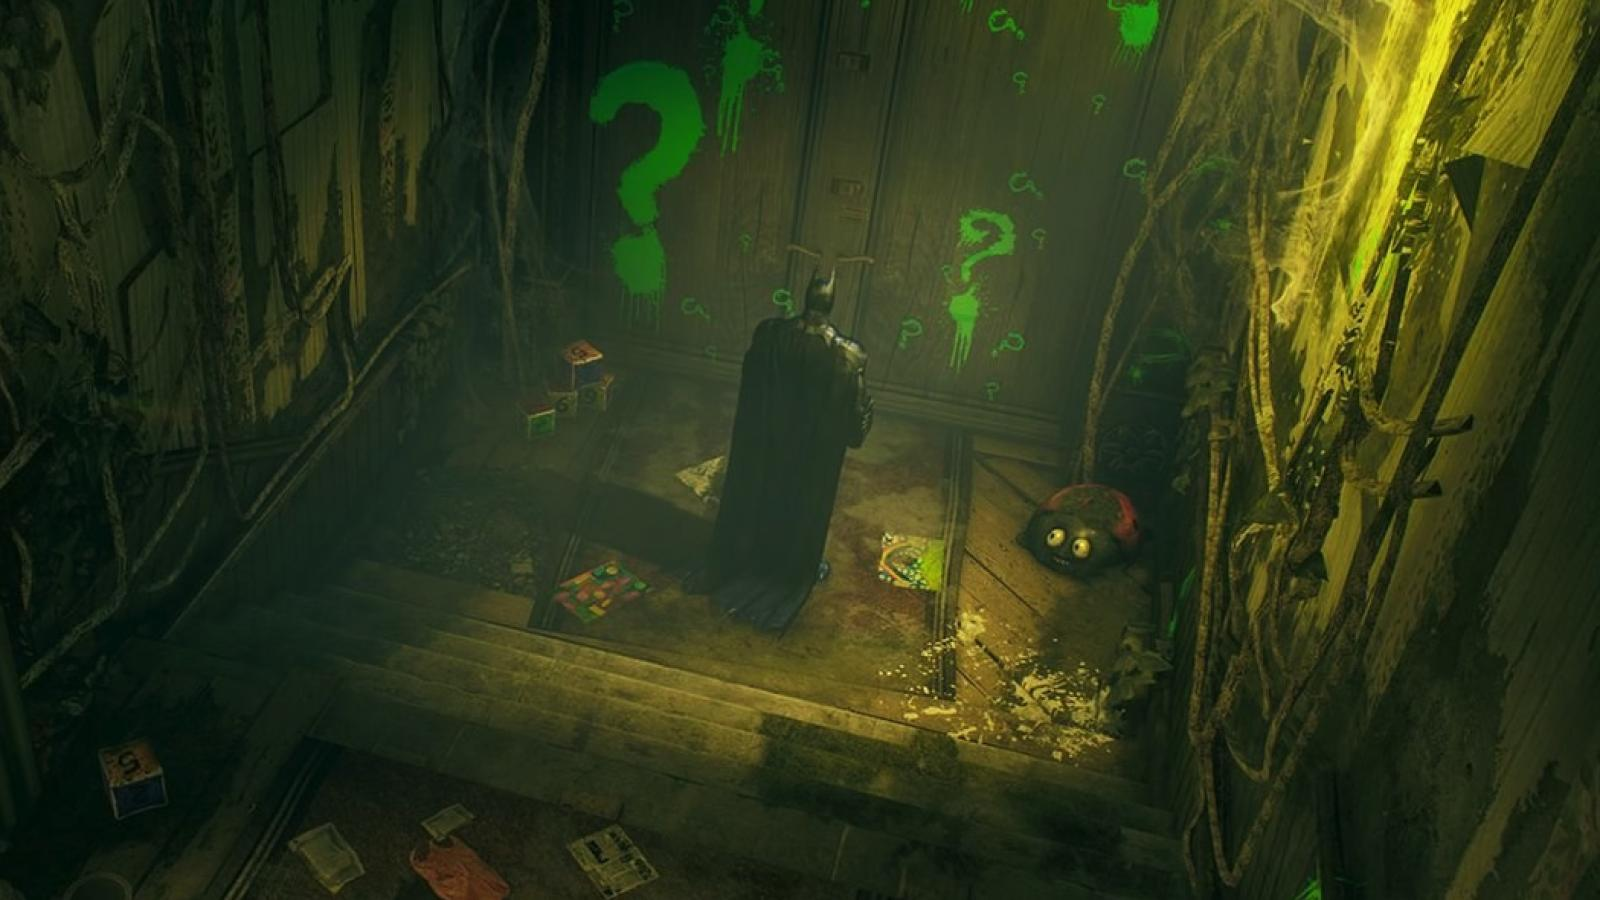 Batman Arkham Knight Environment Art